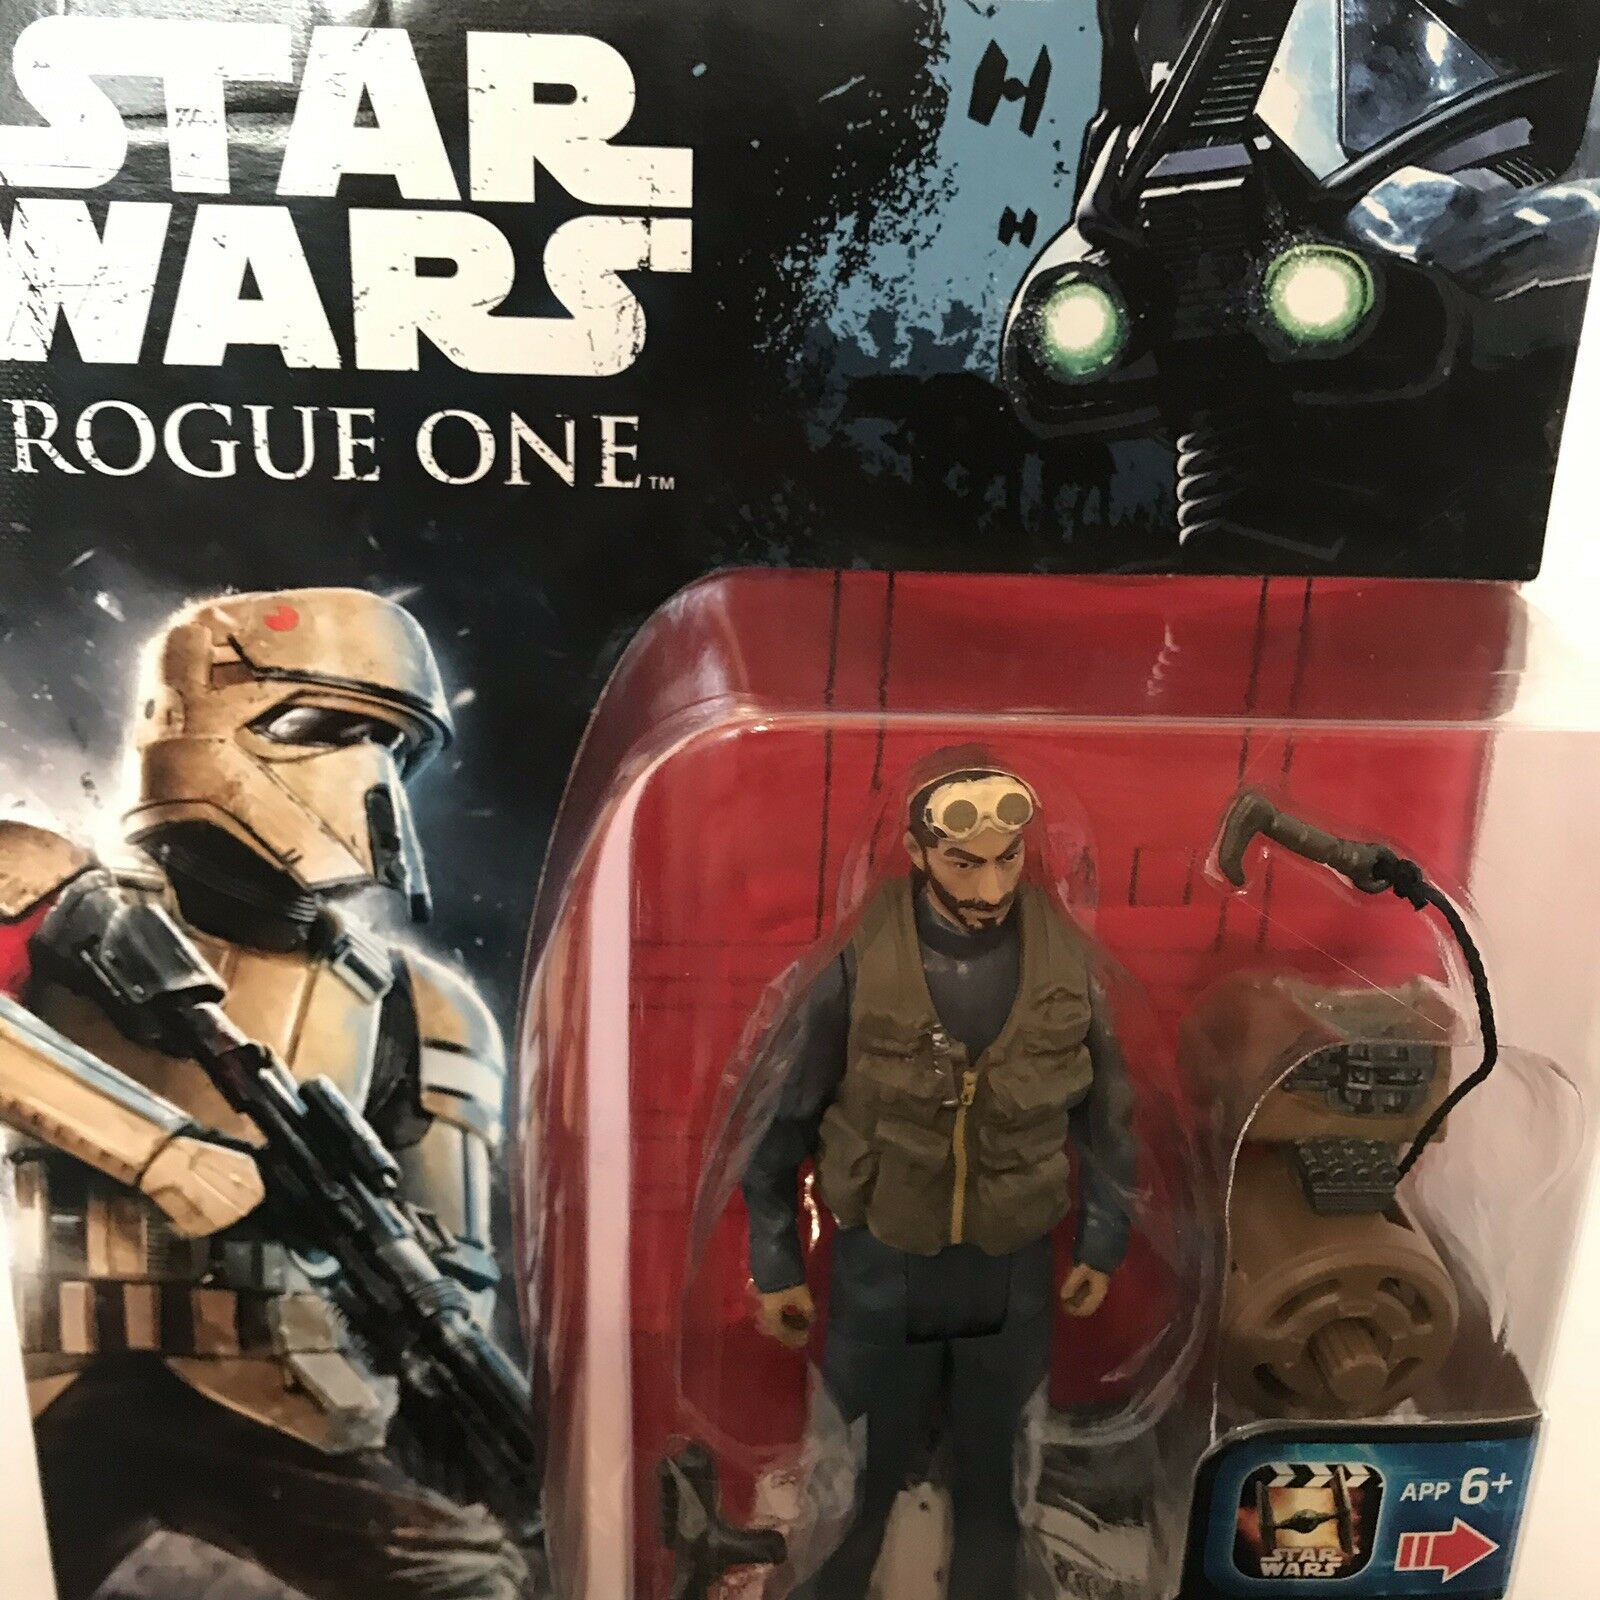 Star Wars VERY RARE FACTORY ERROR CARD Shore Trooper Rogue One Action Figure